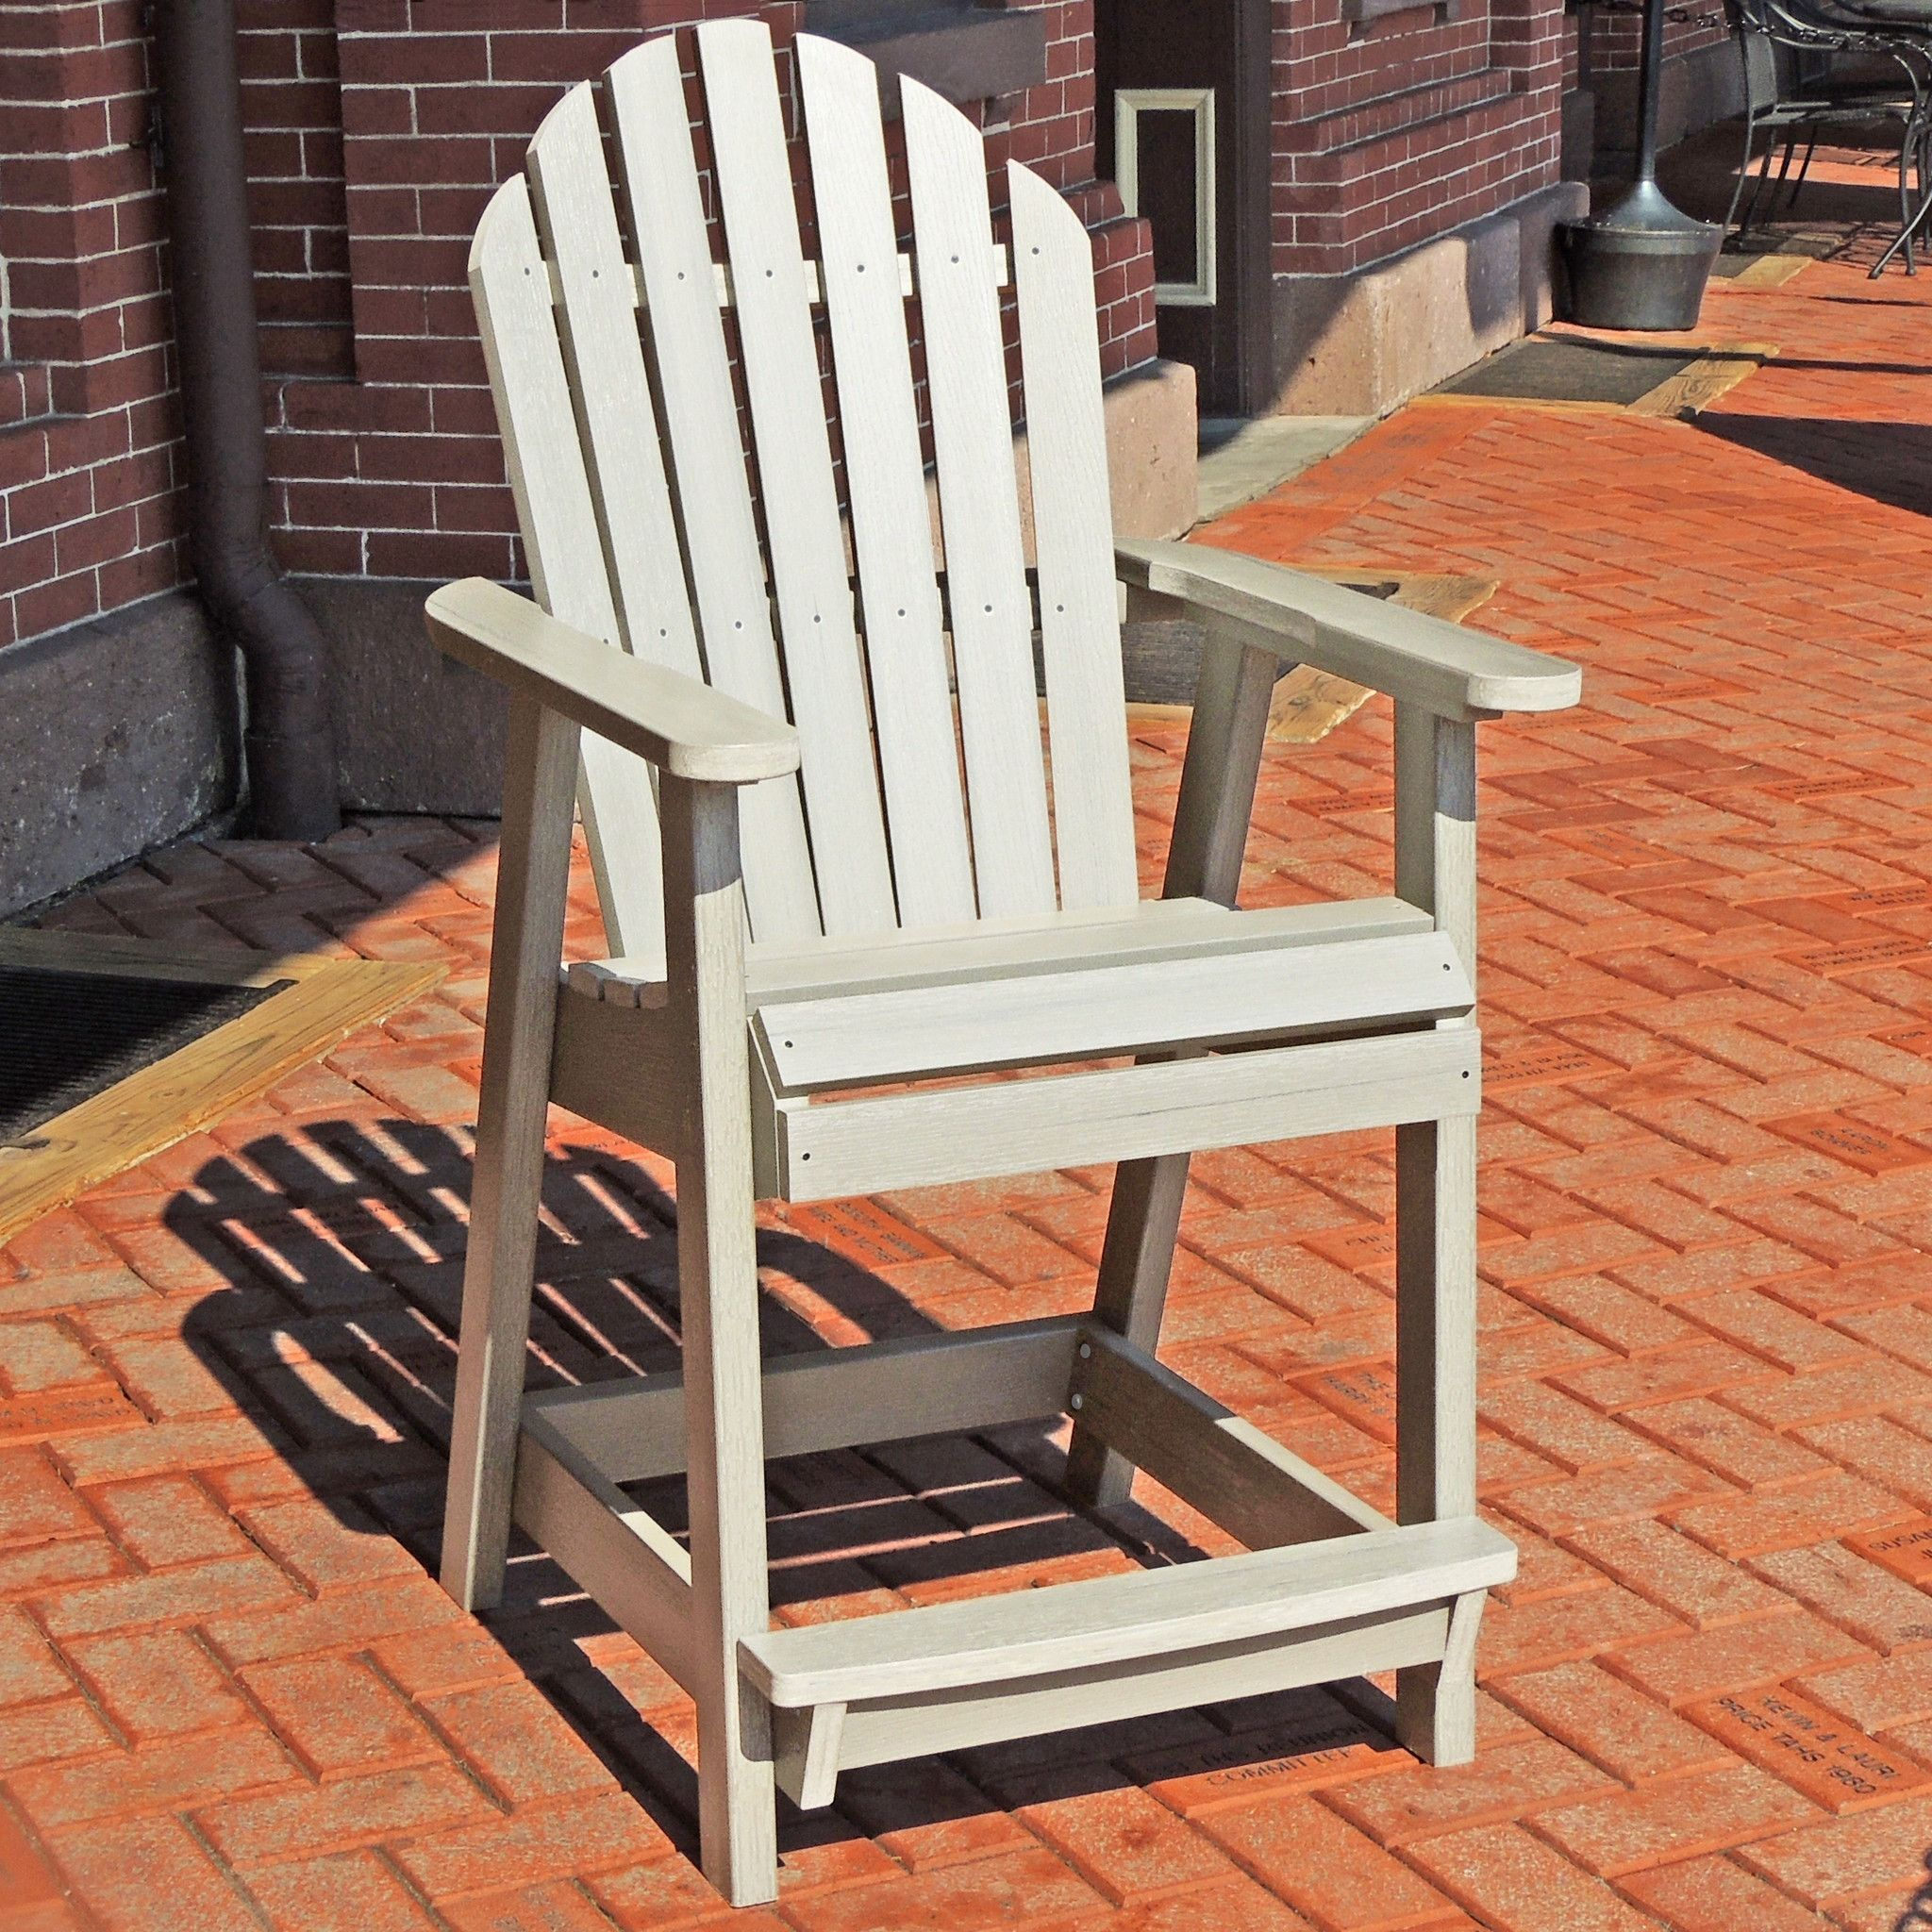 Highwood usa recycled plastic Hamilton Counter Height Deck Chair